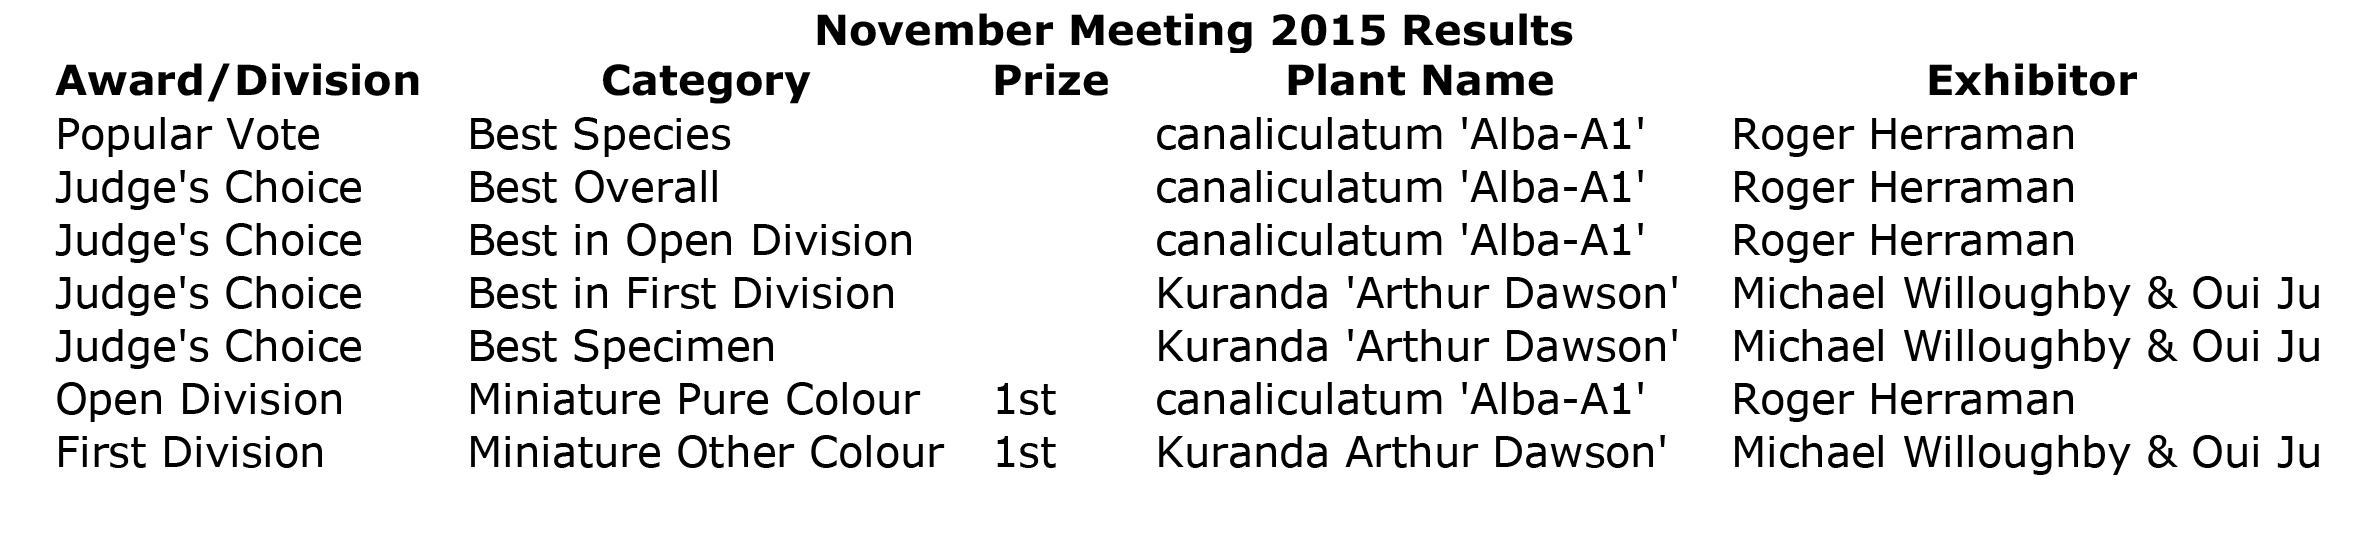 November Meeting 2015 Results.jpg